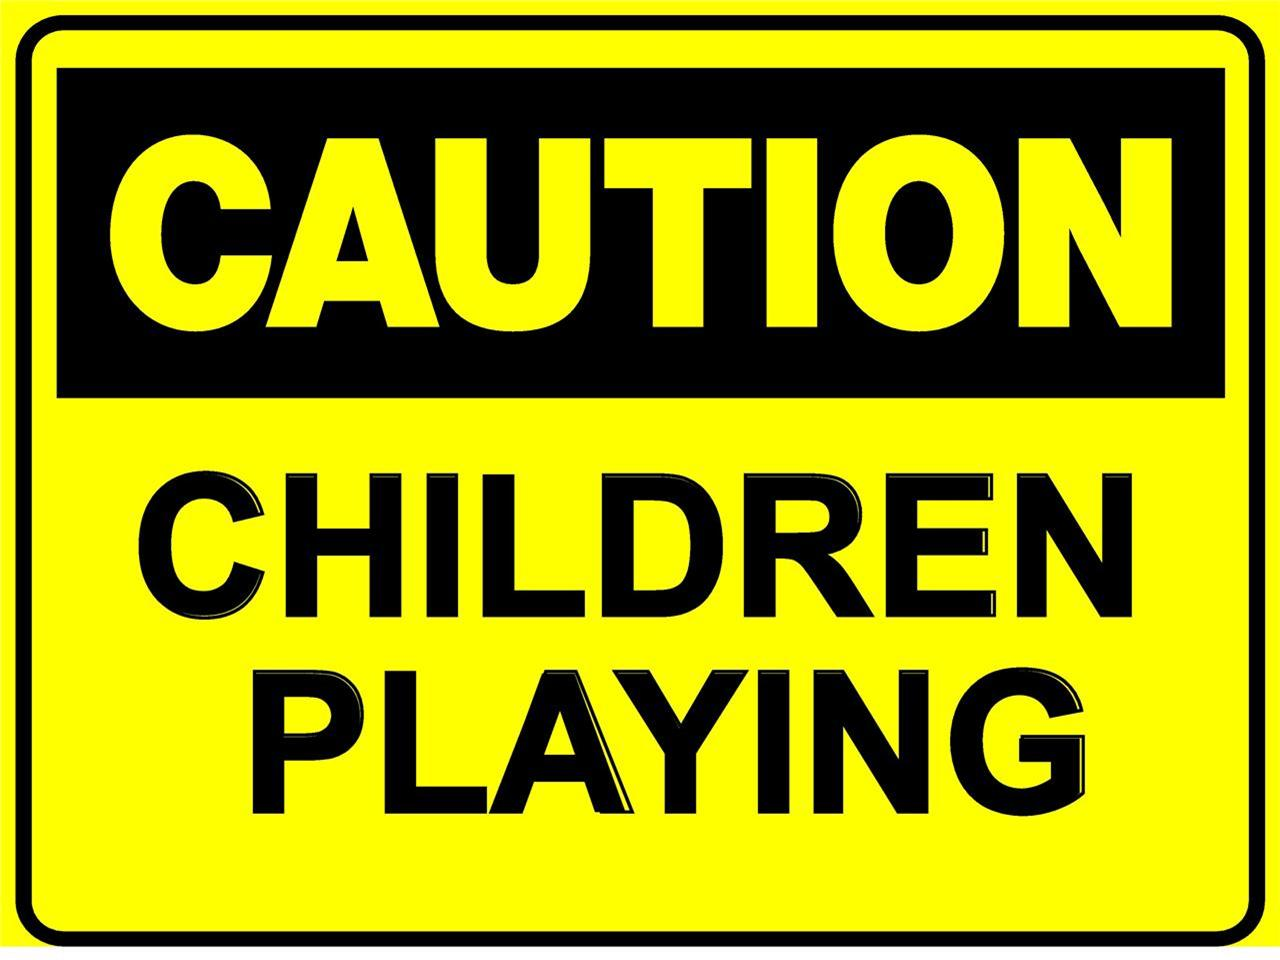 CAUTION CHILDREN PLAYING - METAL SIGN 300X225 - SAFETY ...